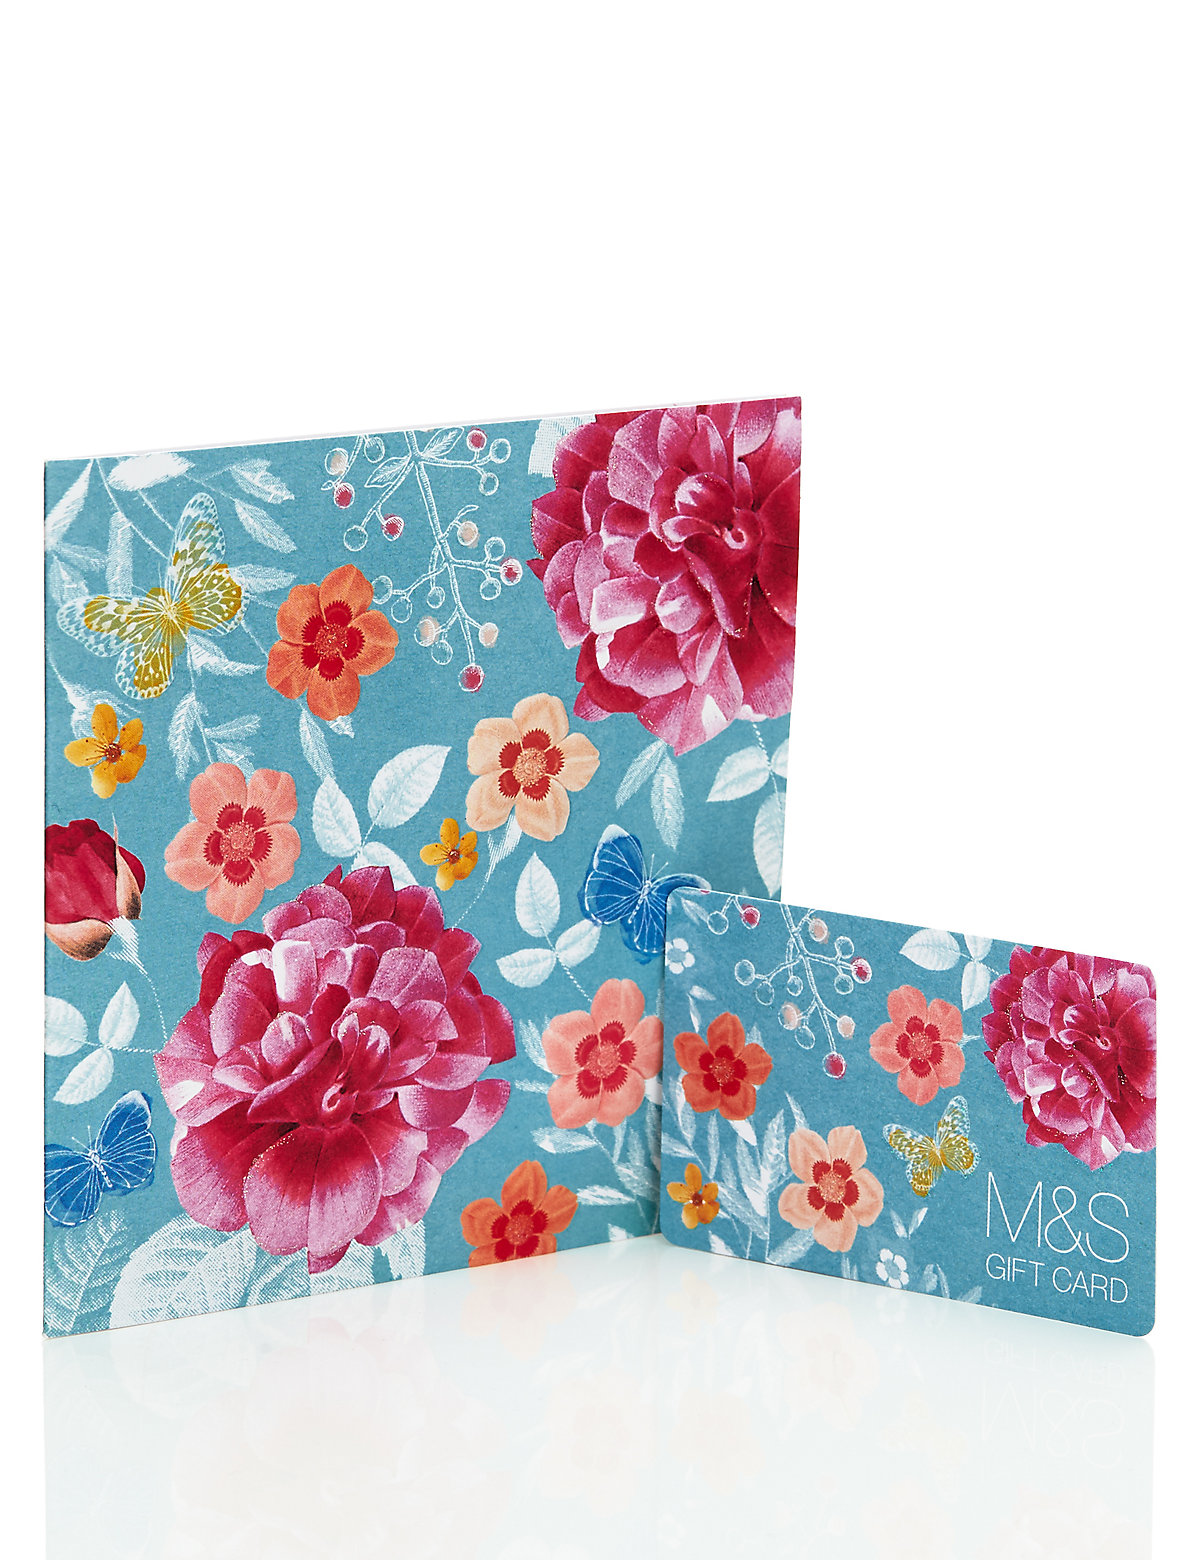 Textured Floral Gift Card £1500